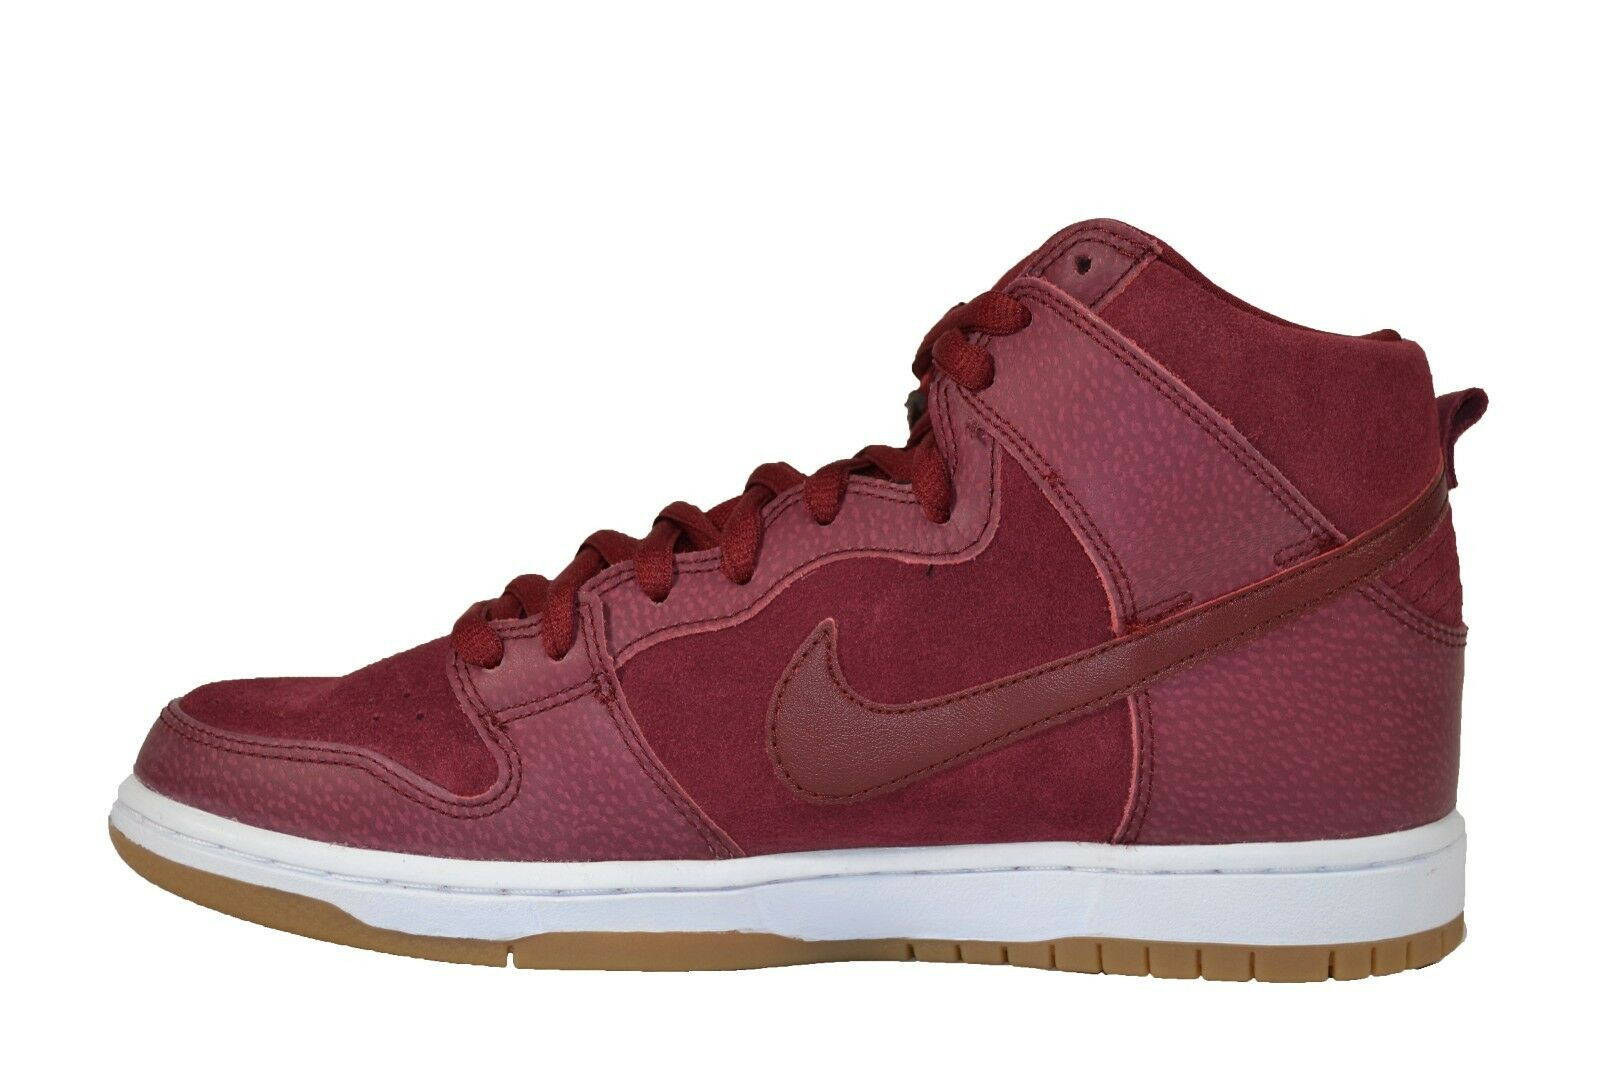 Nike DUNK HIGH PRO SB Team Red Filbert Discounted (183) Men's shoes